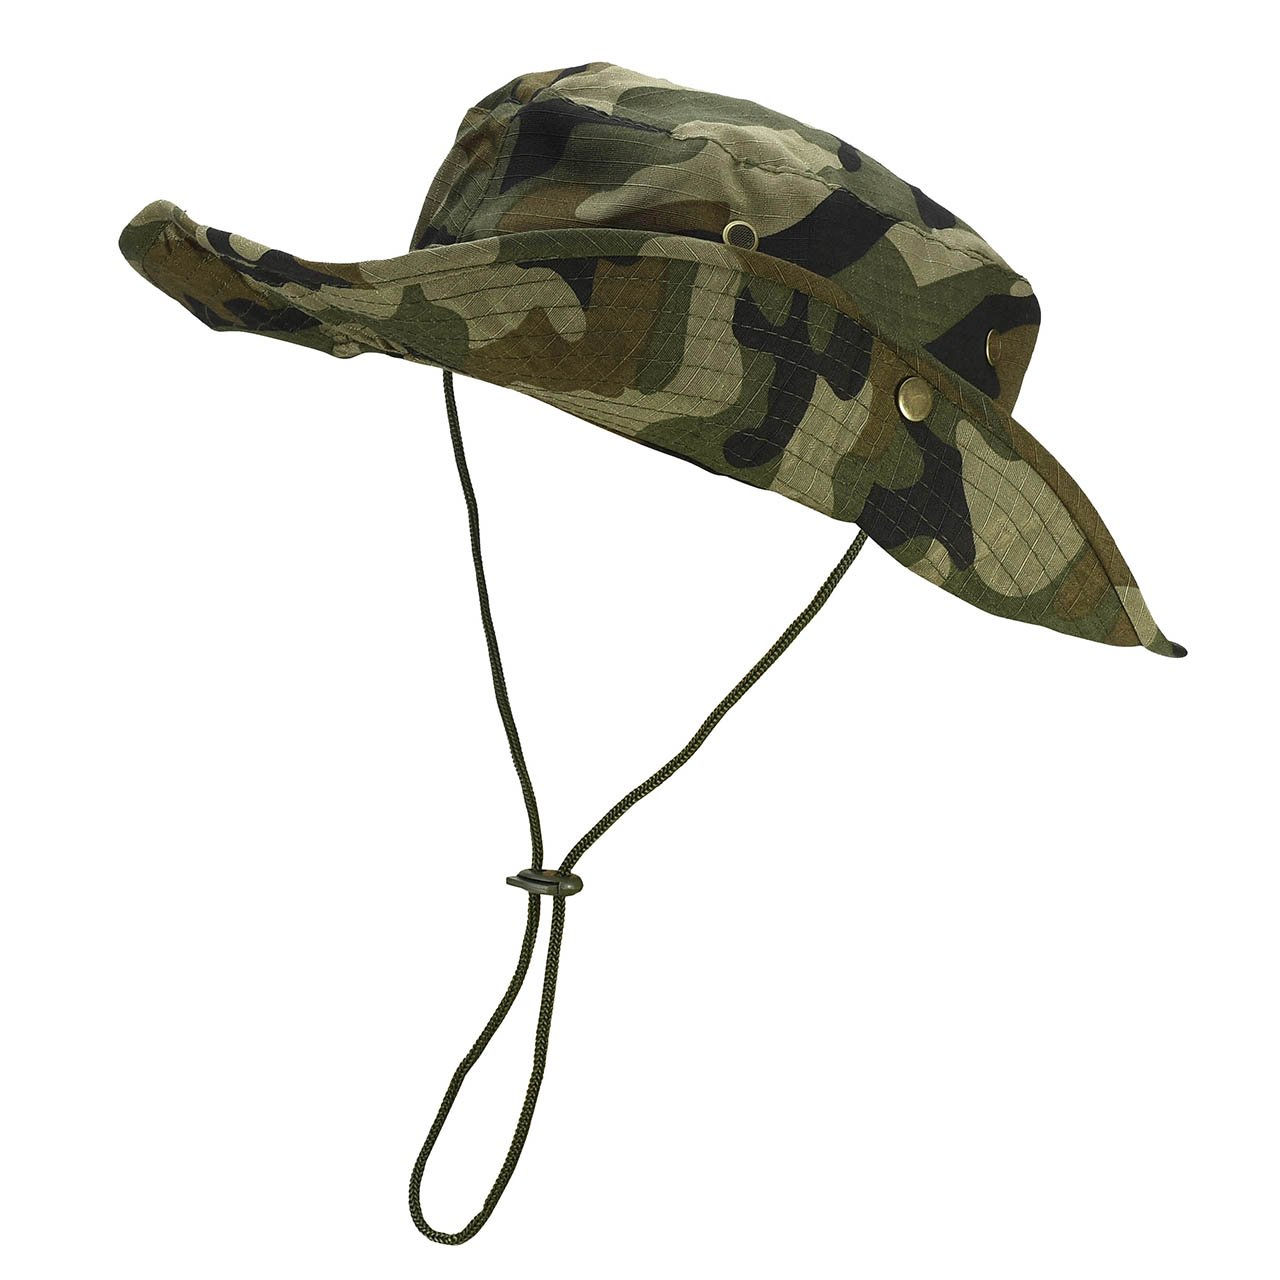 a098071f289 FALETO Outdoor Boonie Hat Wide Brim Breathable Safari Fishing Hats UV  Protection Foldable Military Cap